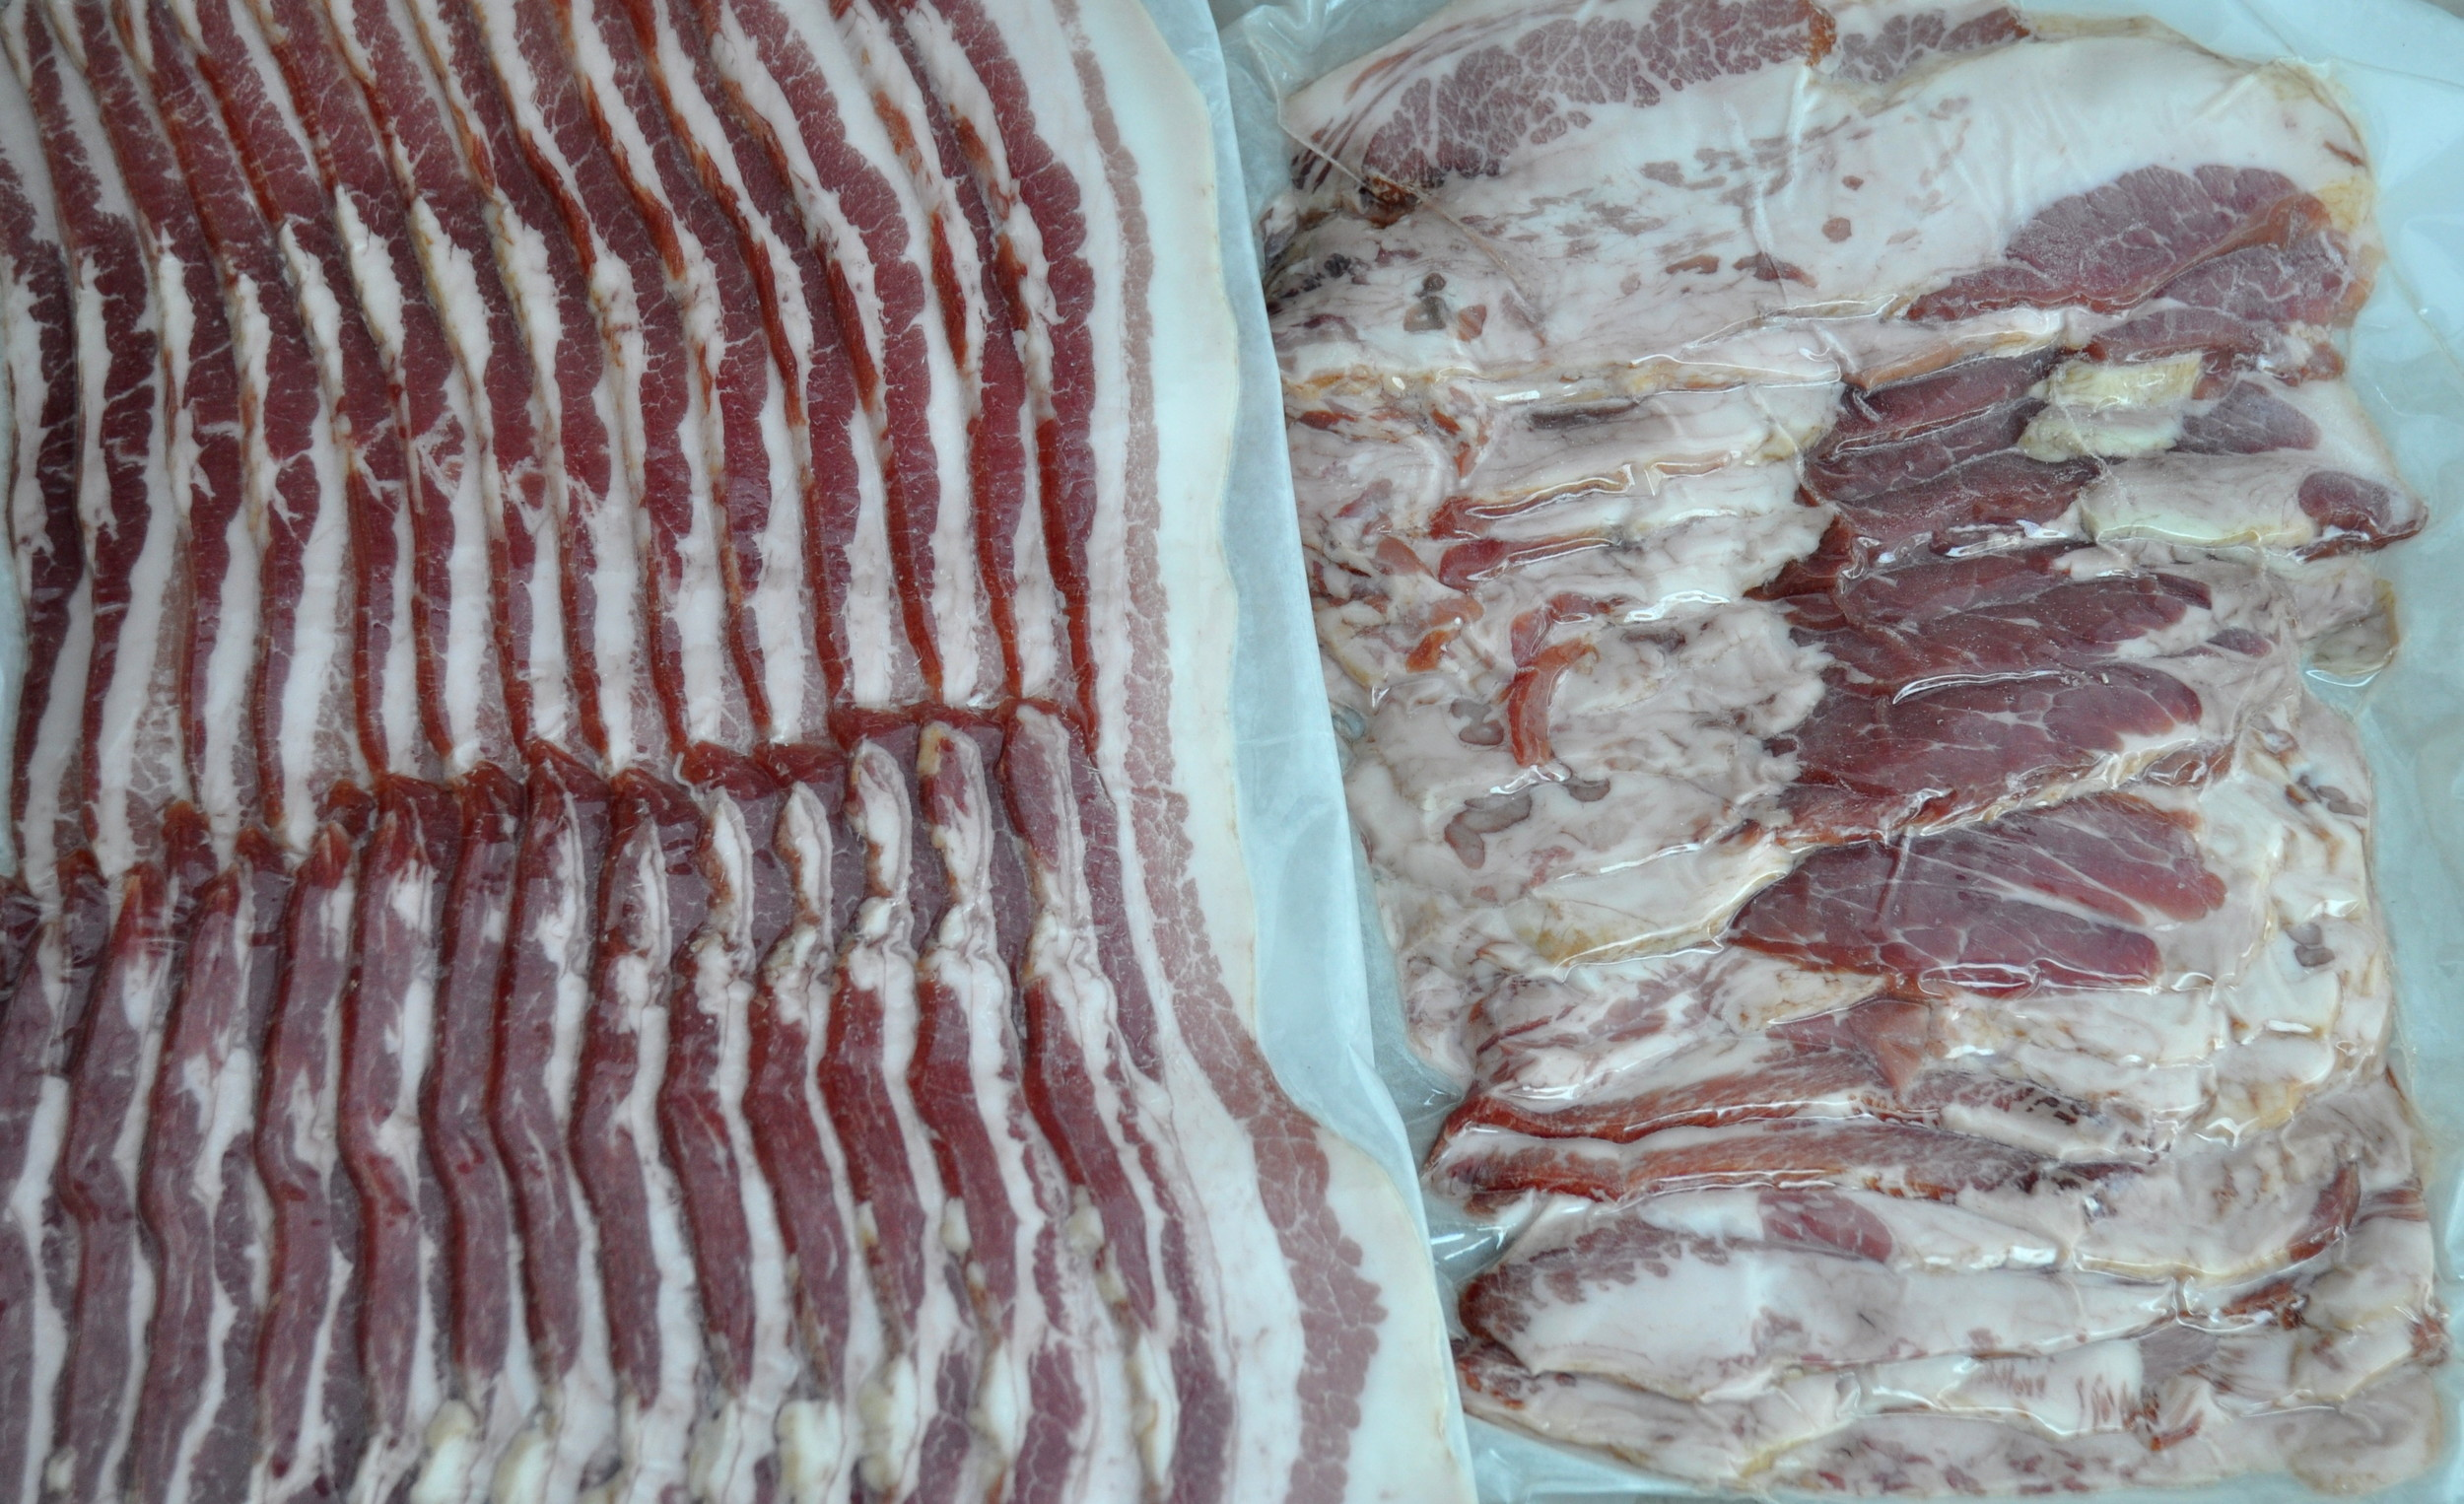 Olsen Farms pork belly bacon (left) and jowl bacon (right). Photo copyright 2013 by Zachary D. Lyons.